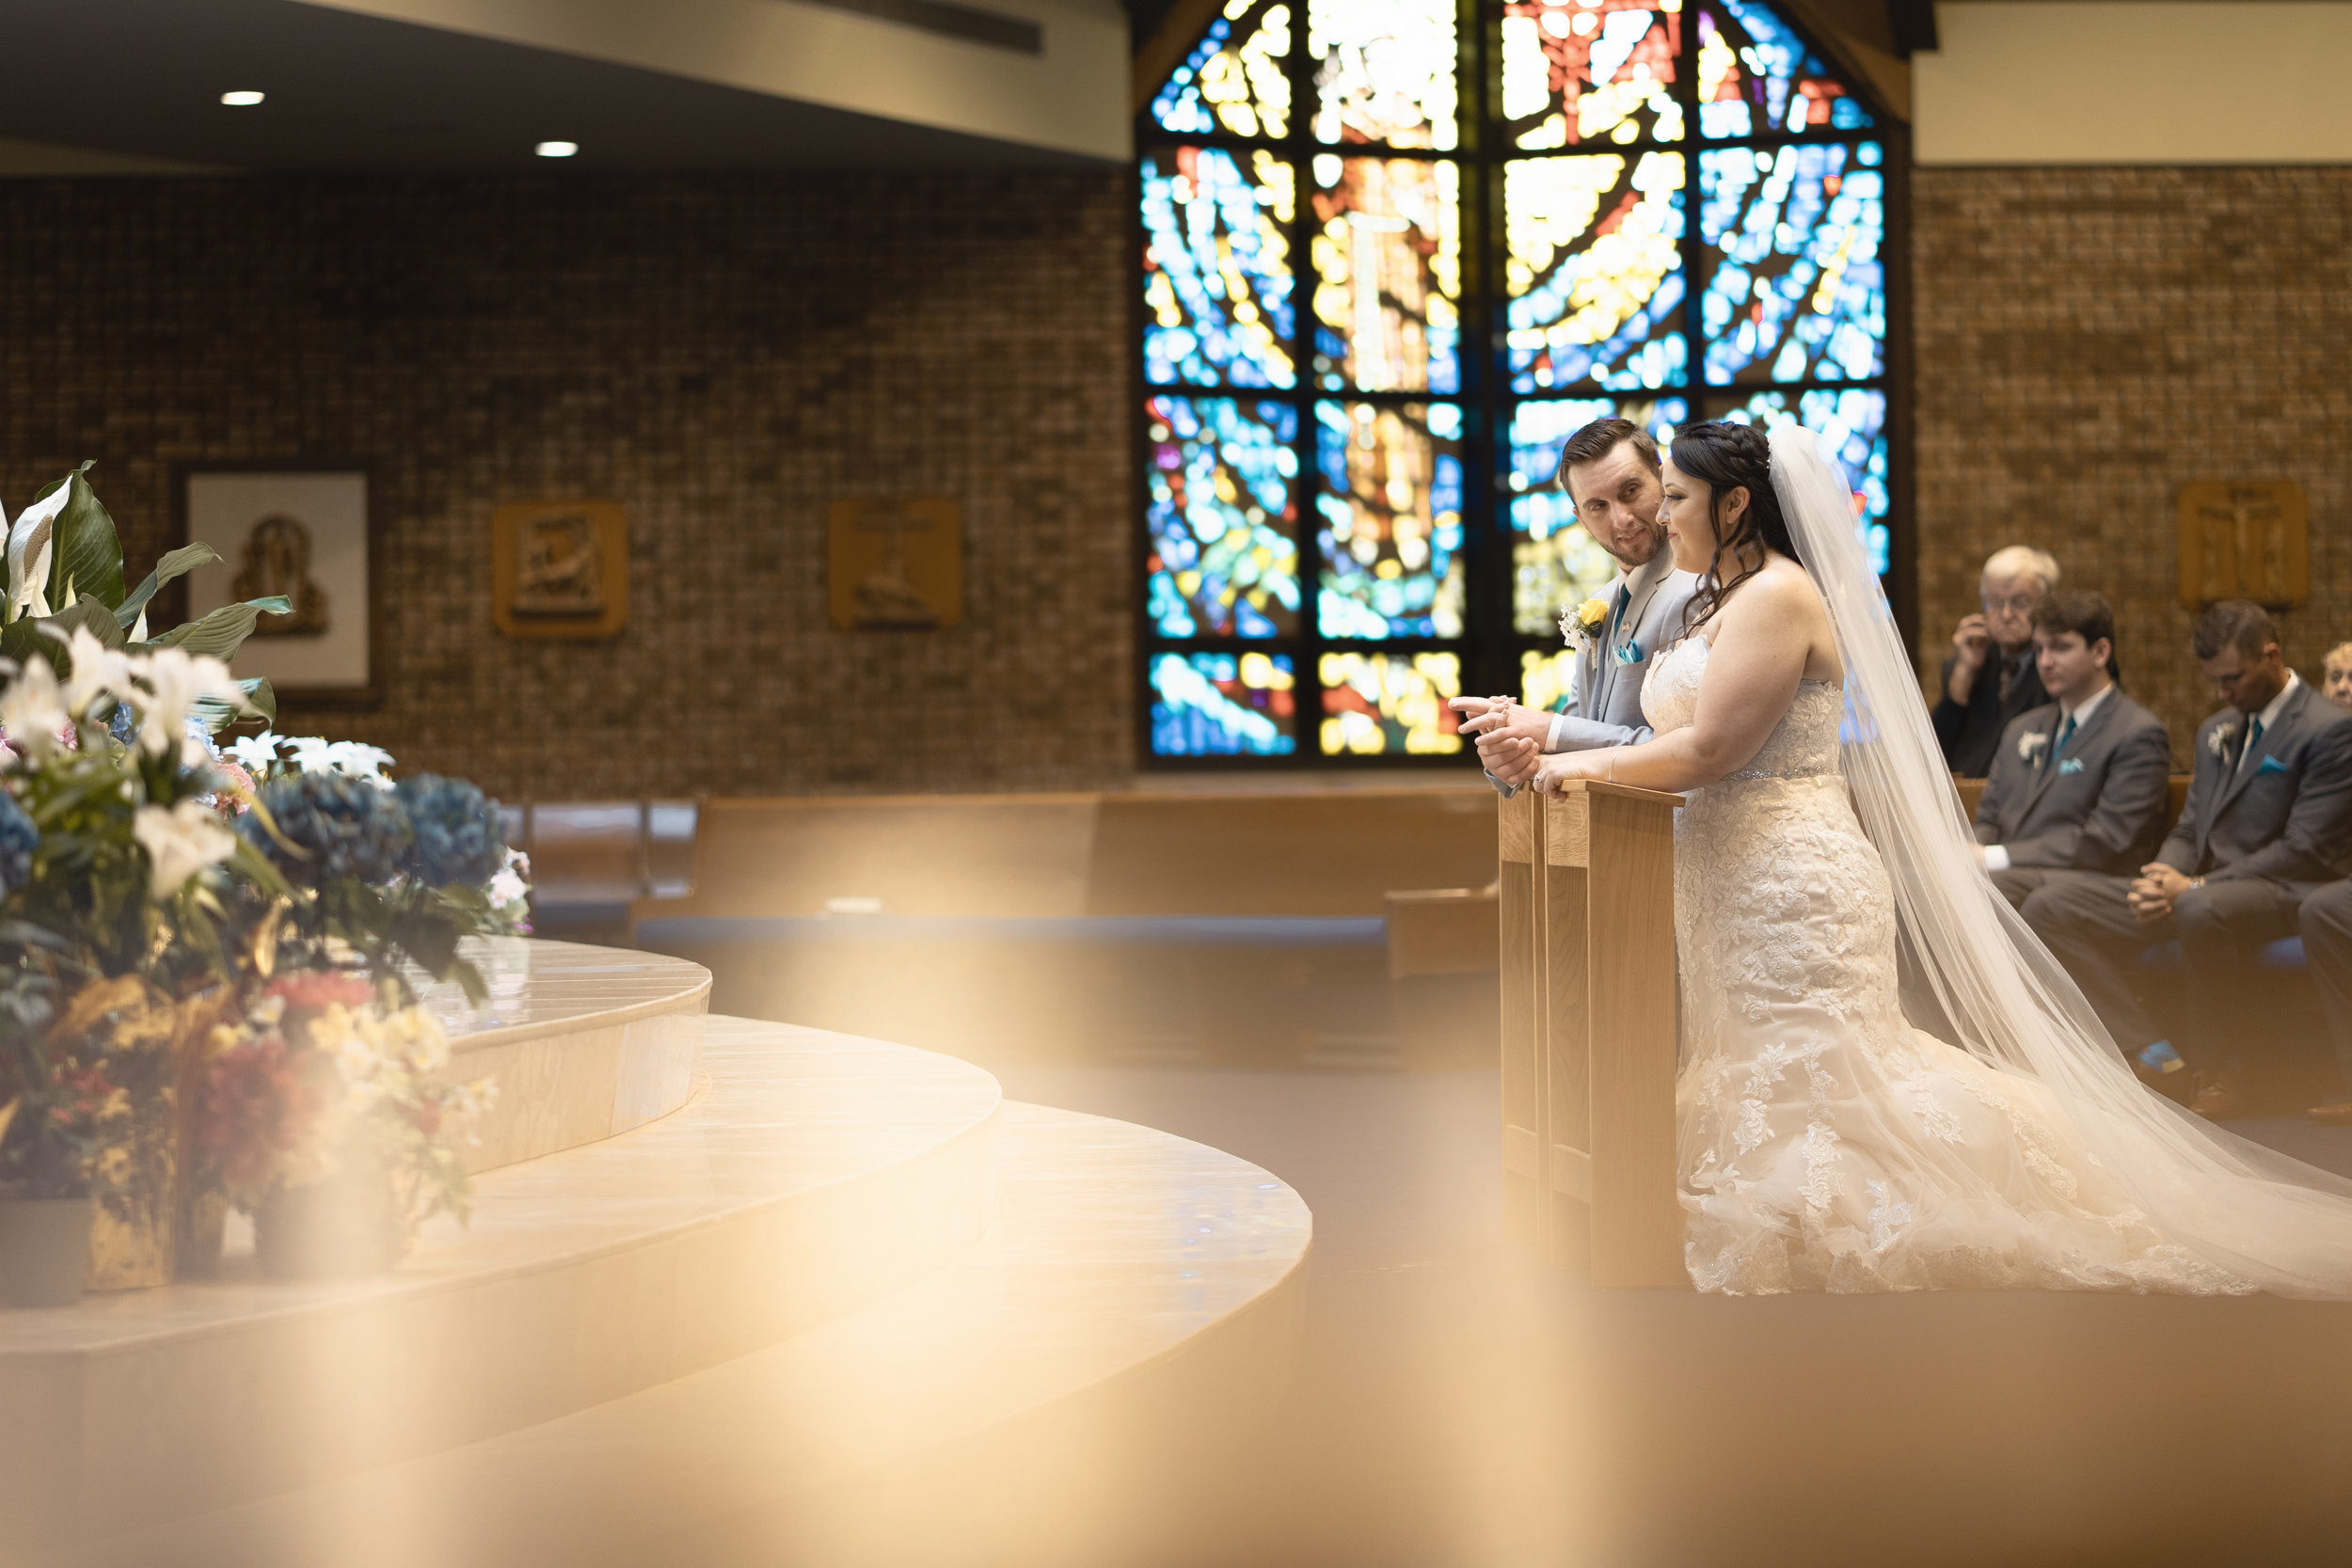 bride-groom-kneeling-on-alter-getting-married-in-catholic-church.jpg